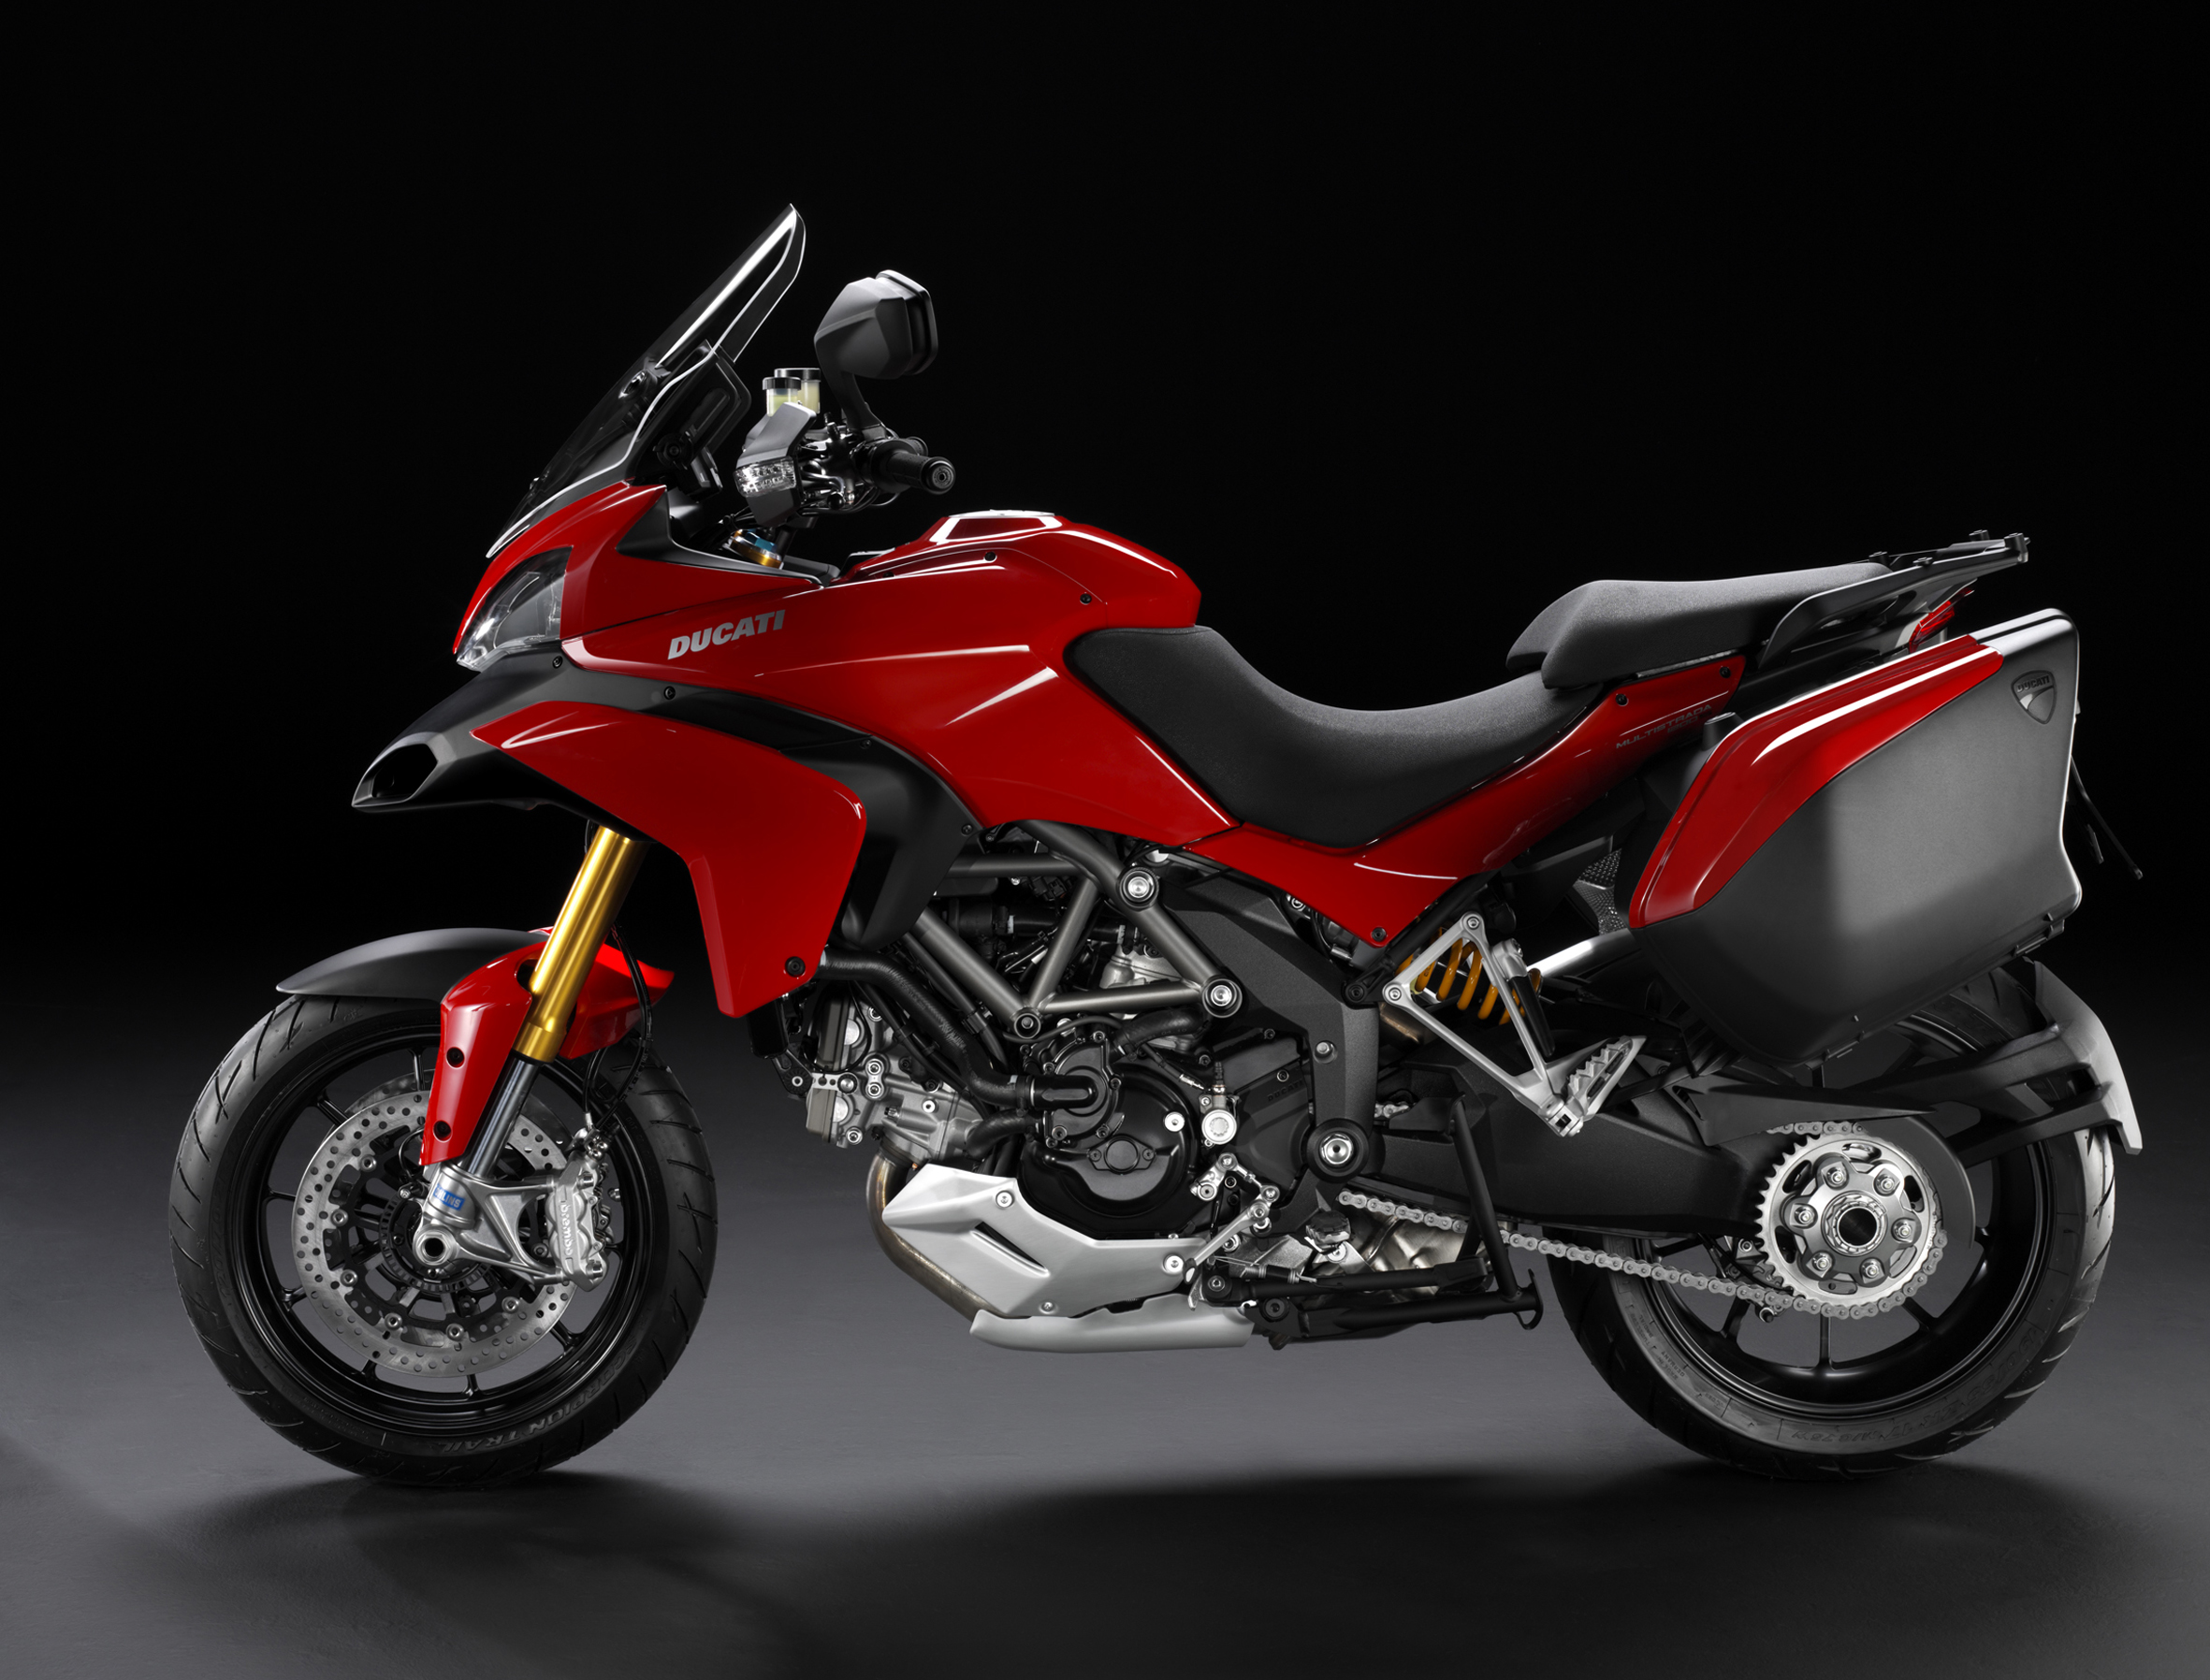 Ducati Sport Touring Motorcycles For Sale